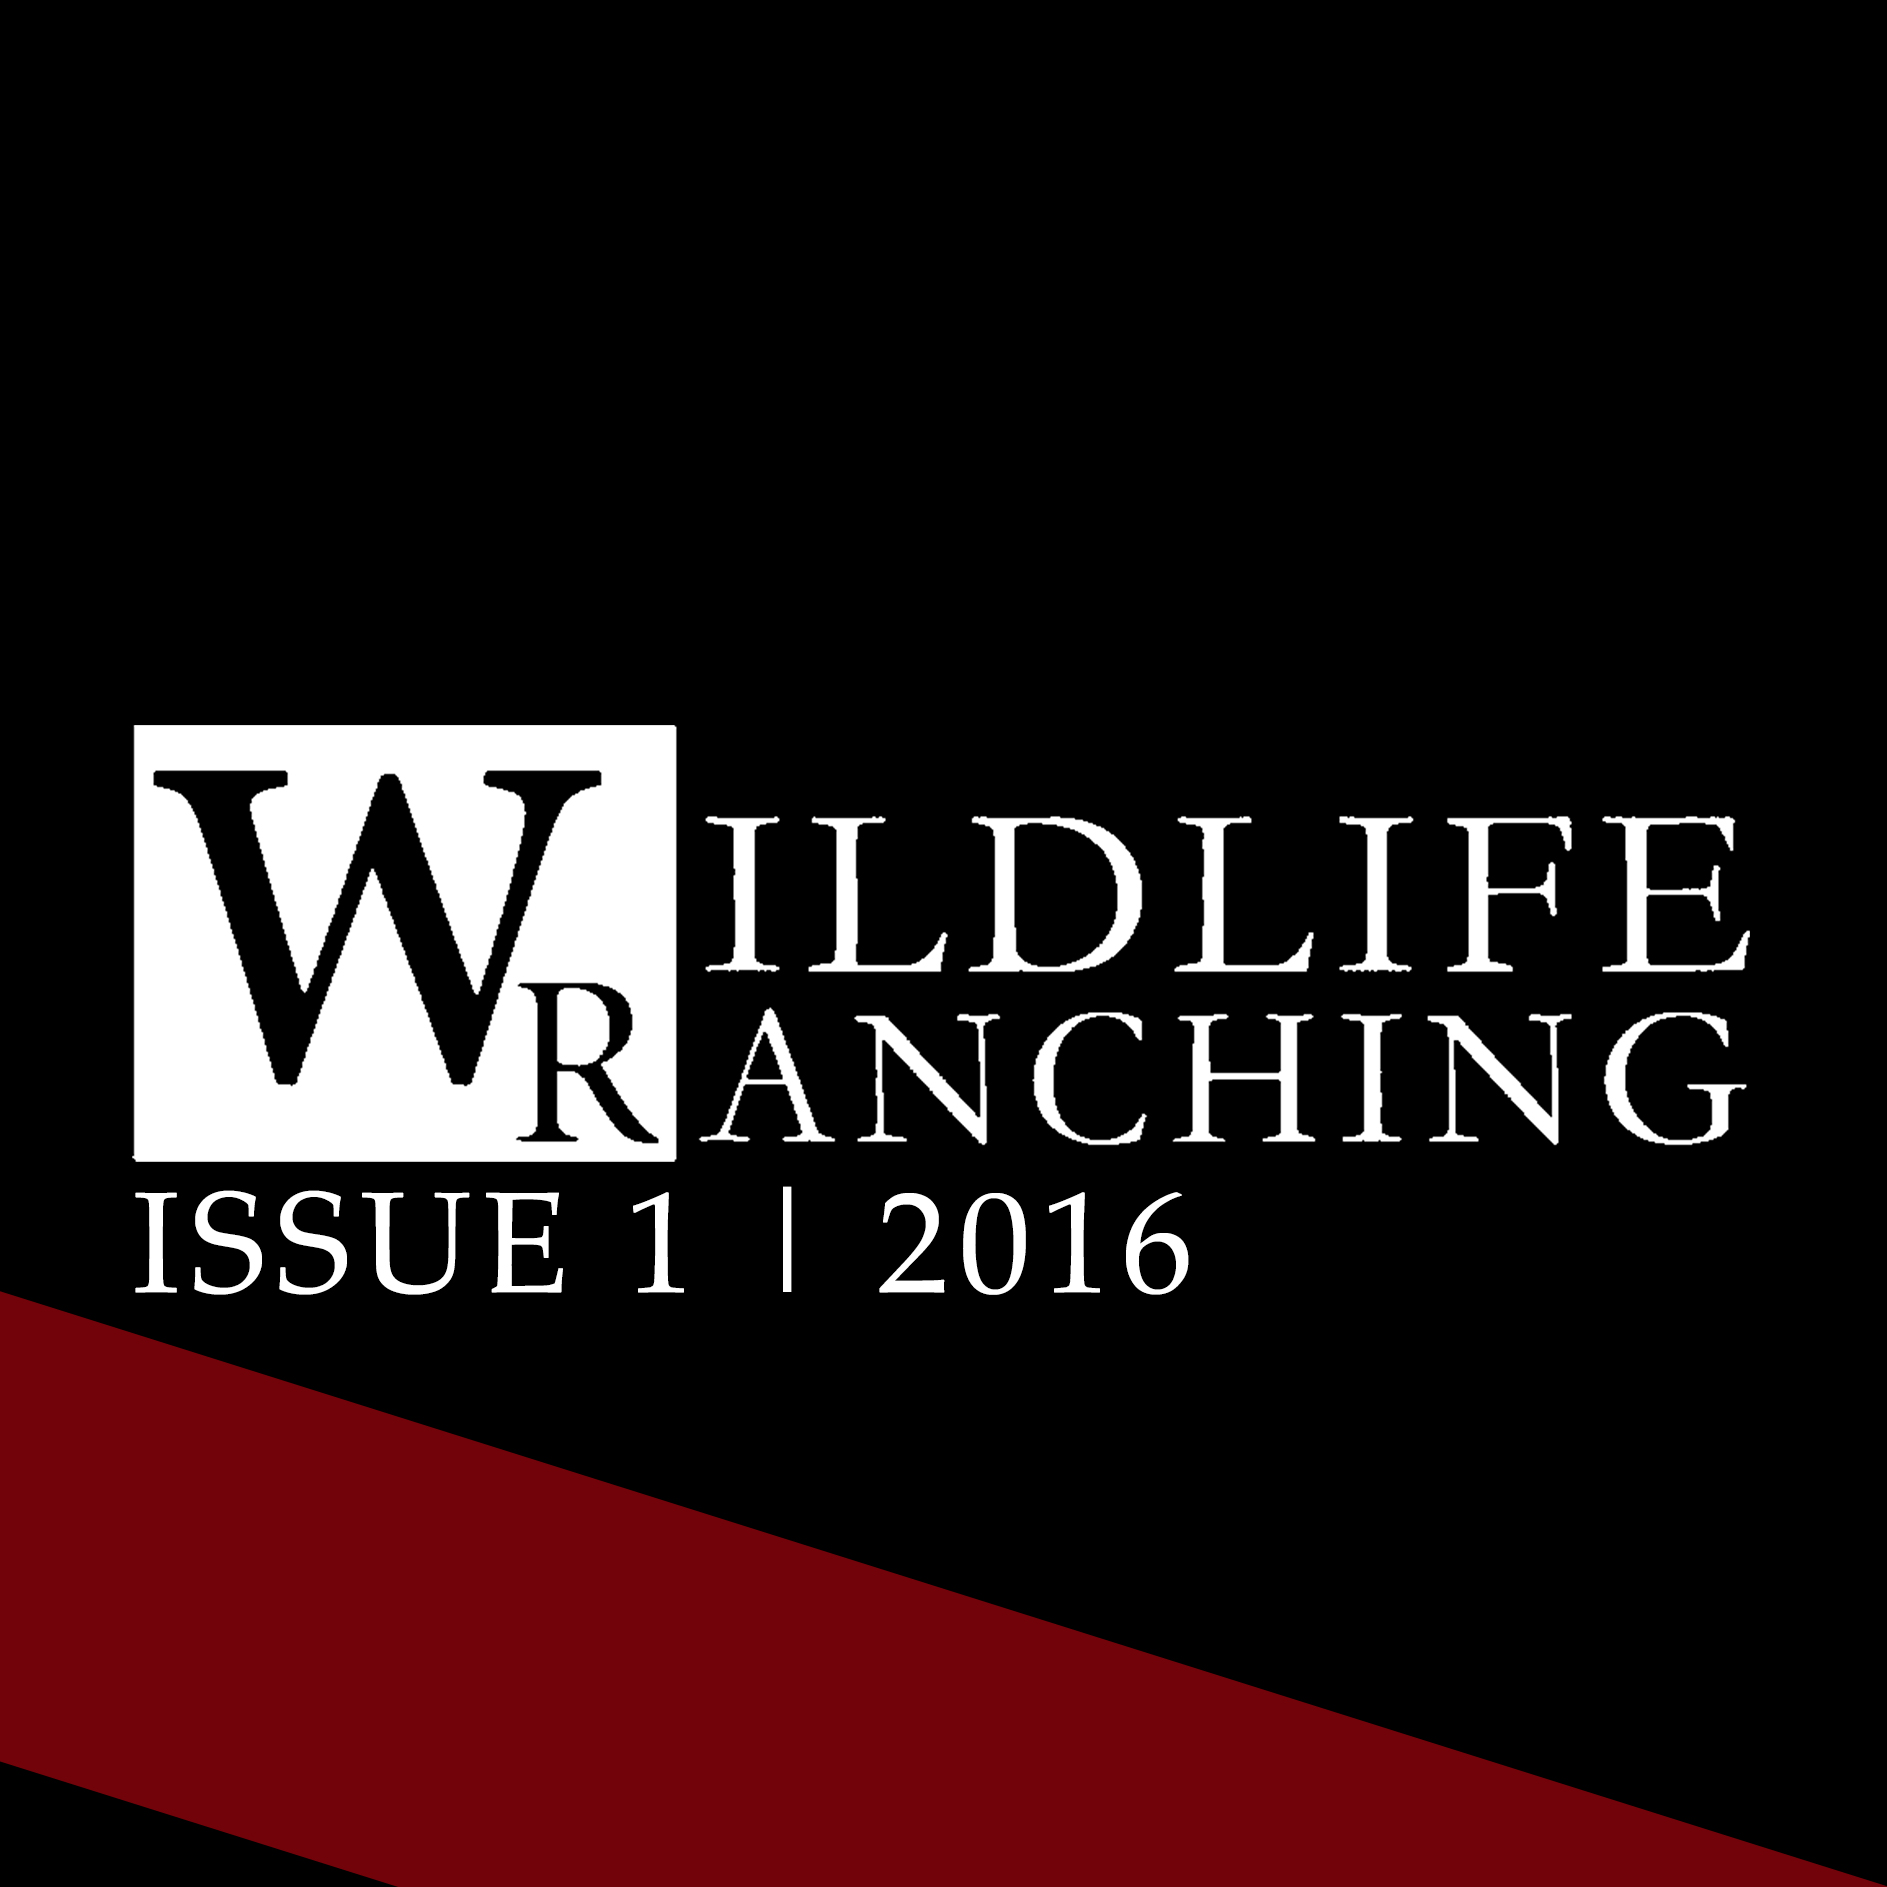 Wildlife Ranching Issue 1 2016.jpg